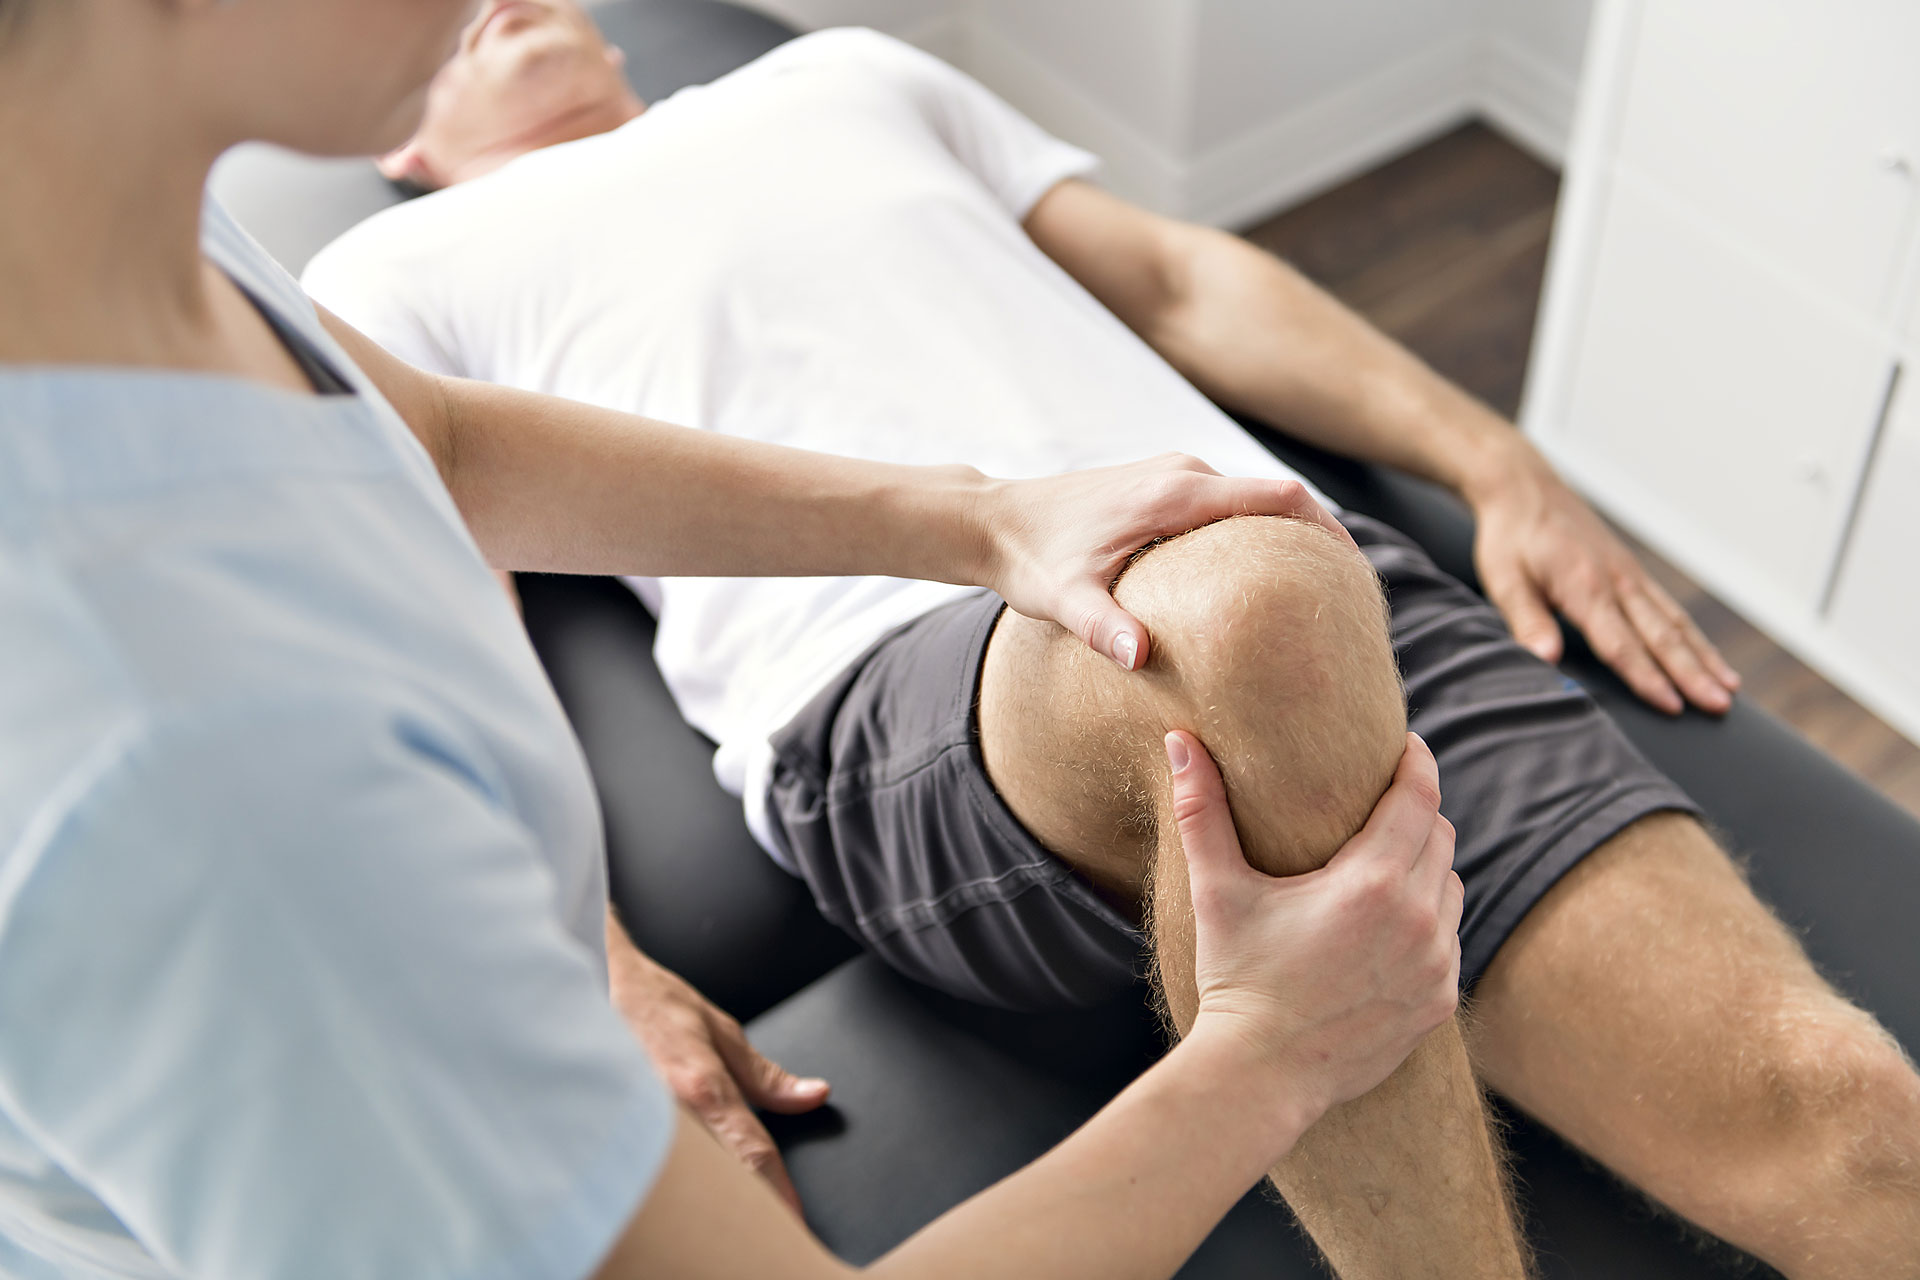 Practitioner performing sports medicine, chiropractic, physical therapy on a patients knee.